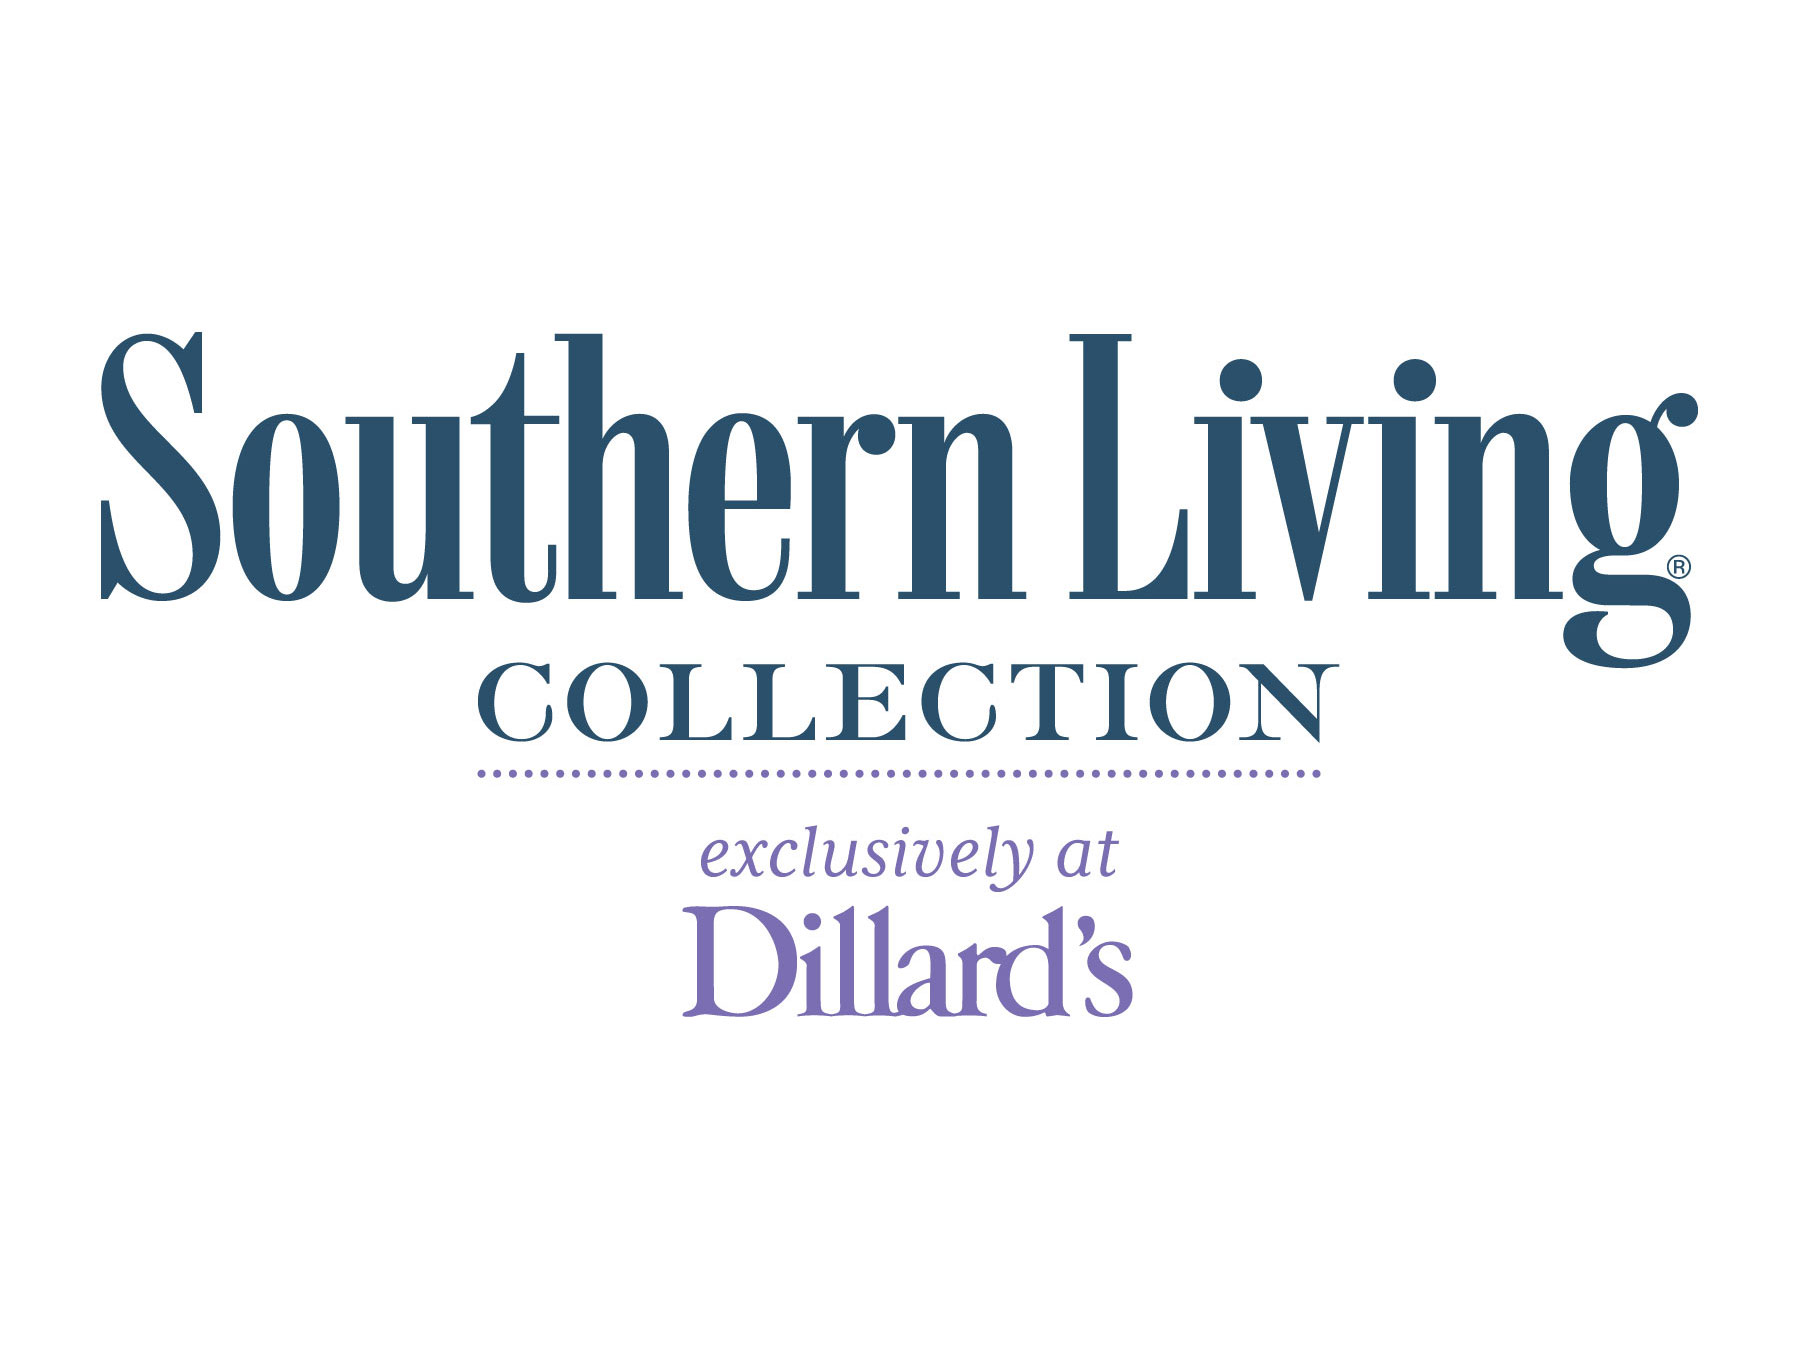 Southern Living Collection for Dillards